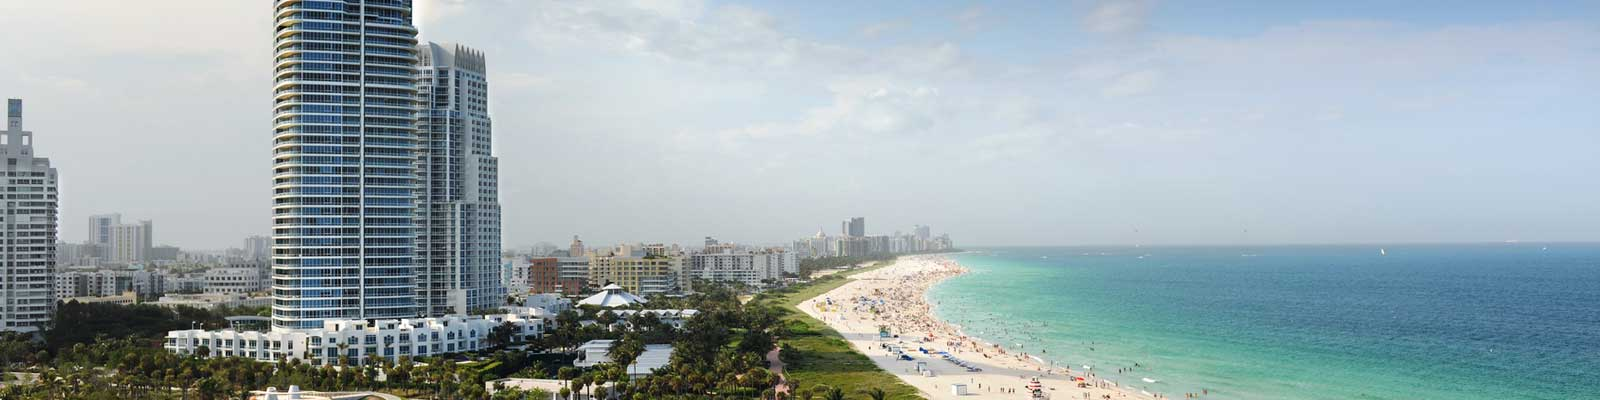 USA Real Estate Investment, Retirement, Vacation, Residential and Commerical Properties - Florida